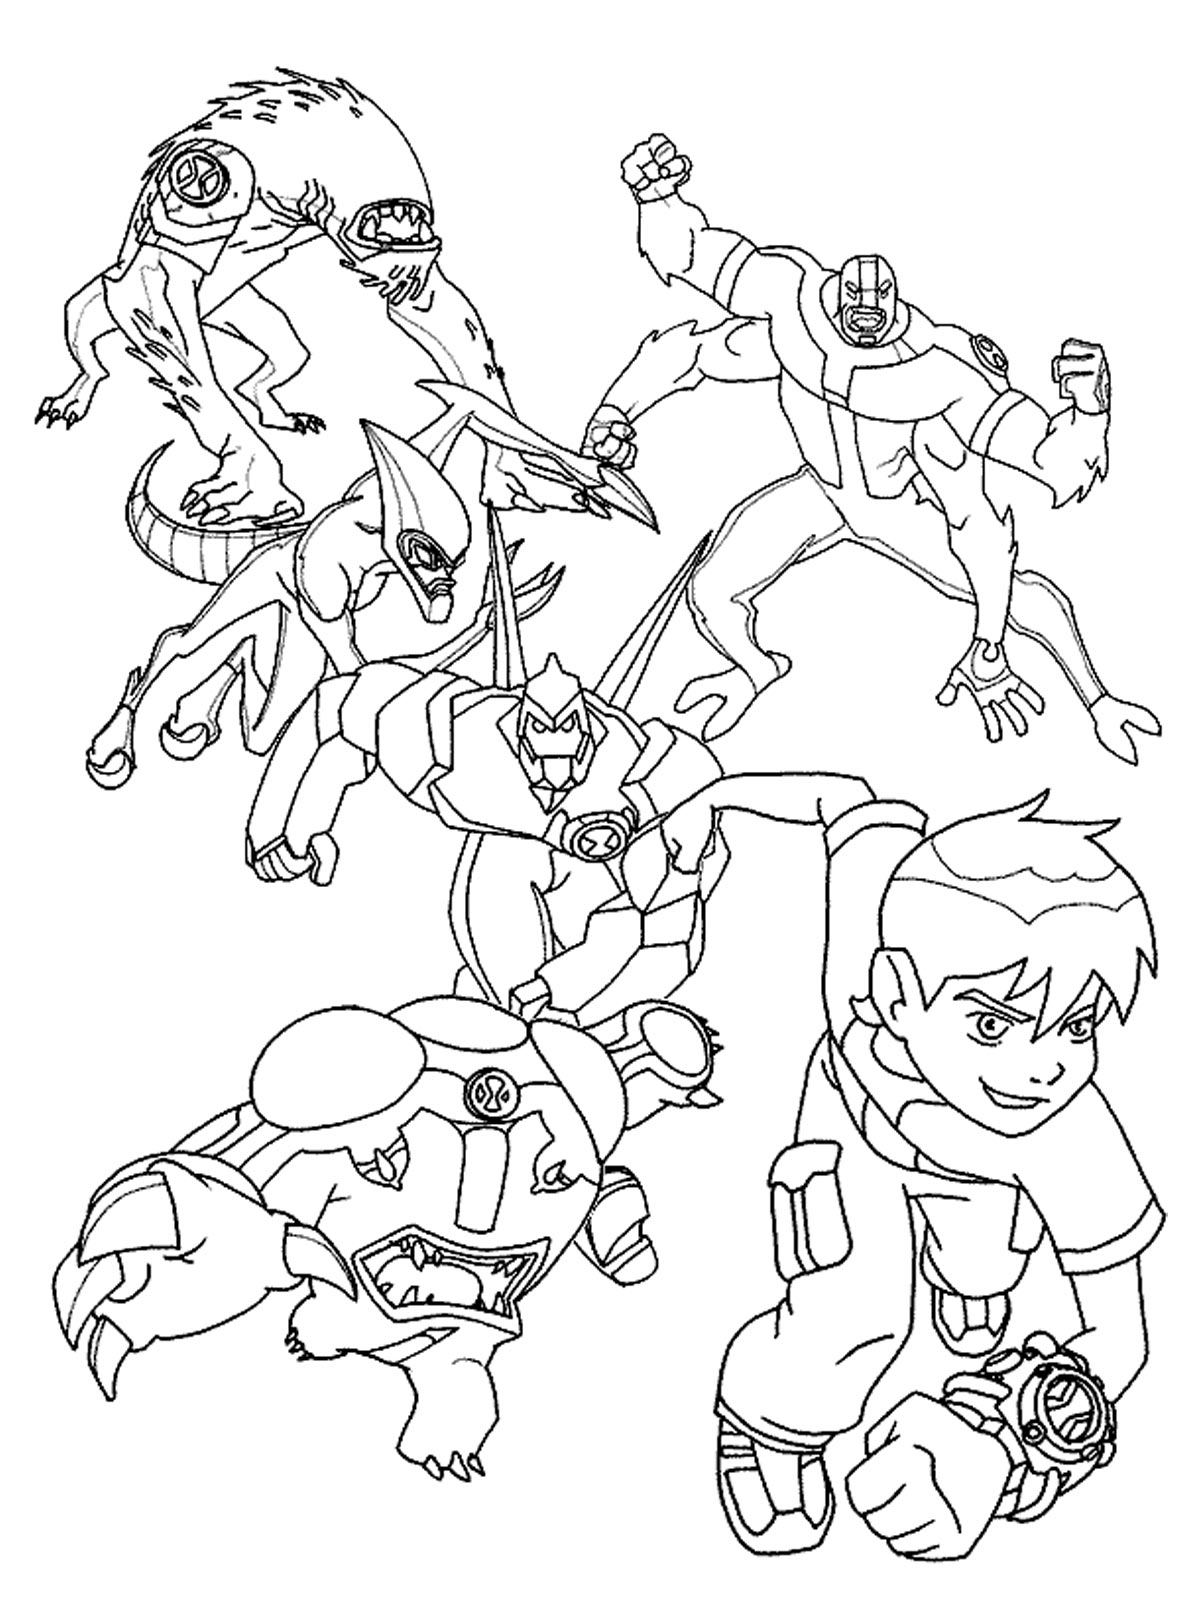 coloring pages of ben 10 aliens ben 10 coloring pages realistic coloring pages of ben pages aliens 10 coloring